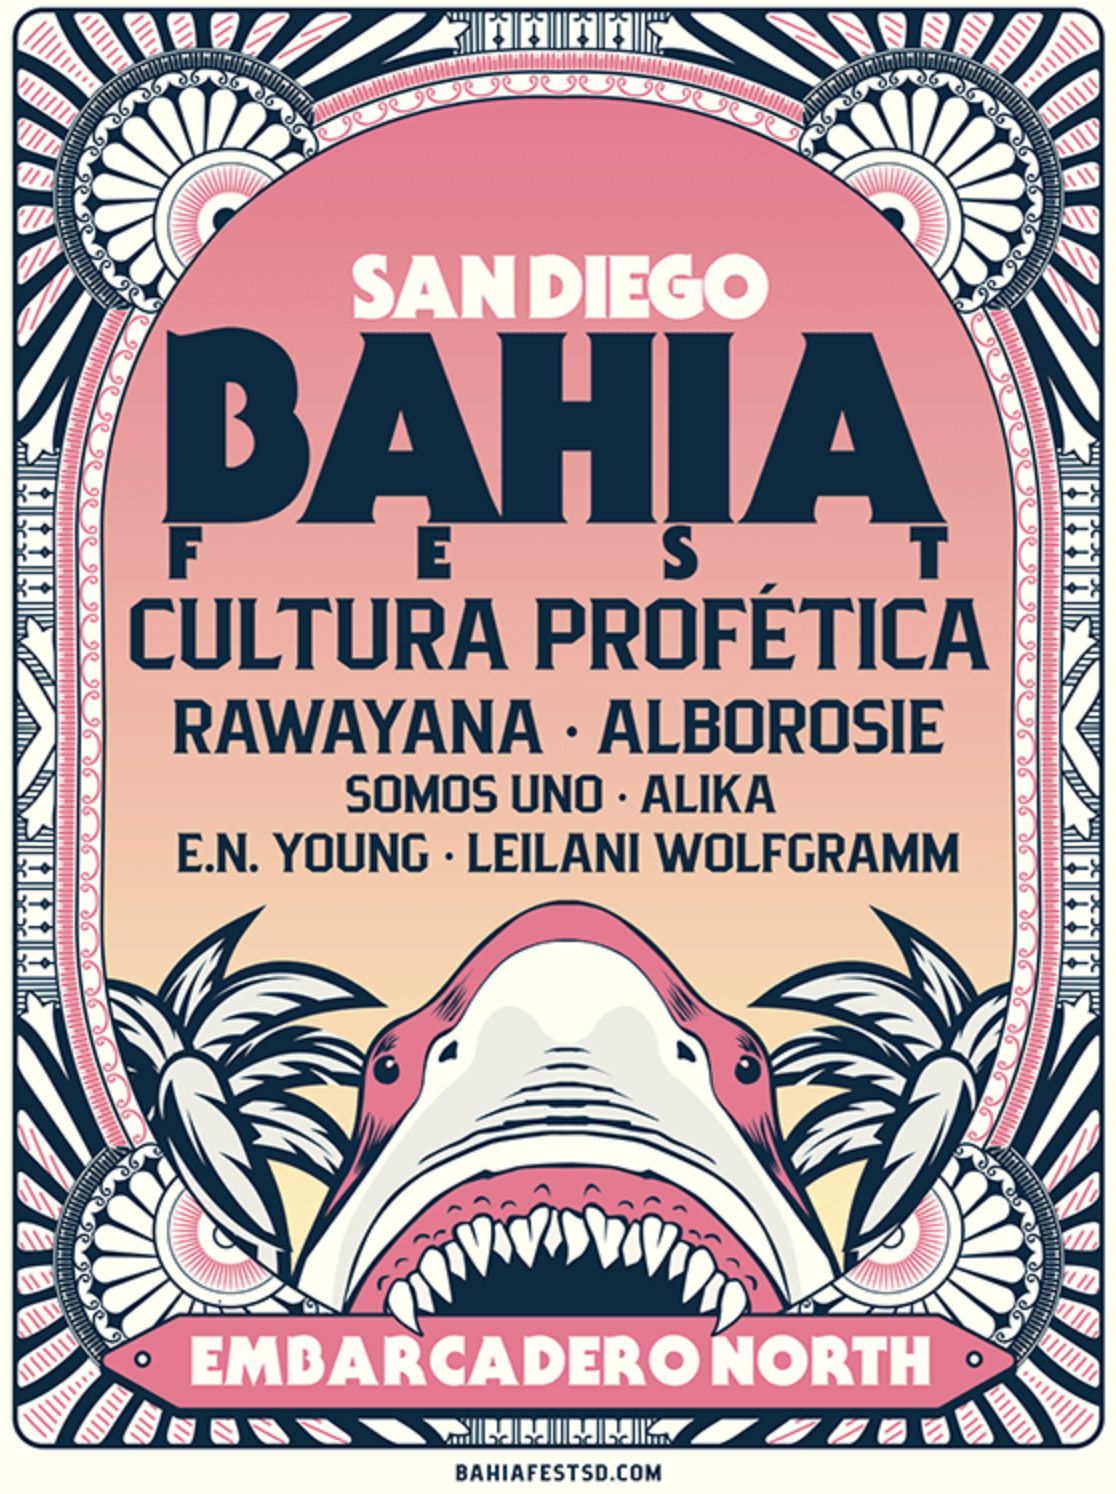 Use promo code SDVILLE to save $15 per ticket to the San Diego Bahia Fest on Saturday, October 19!